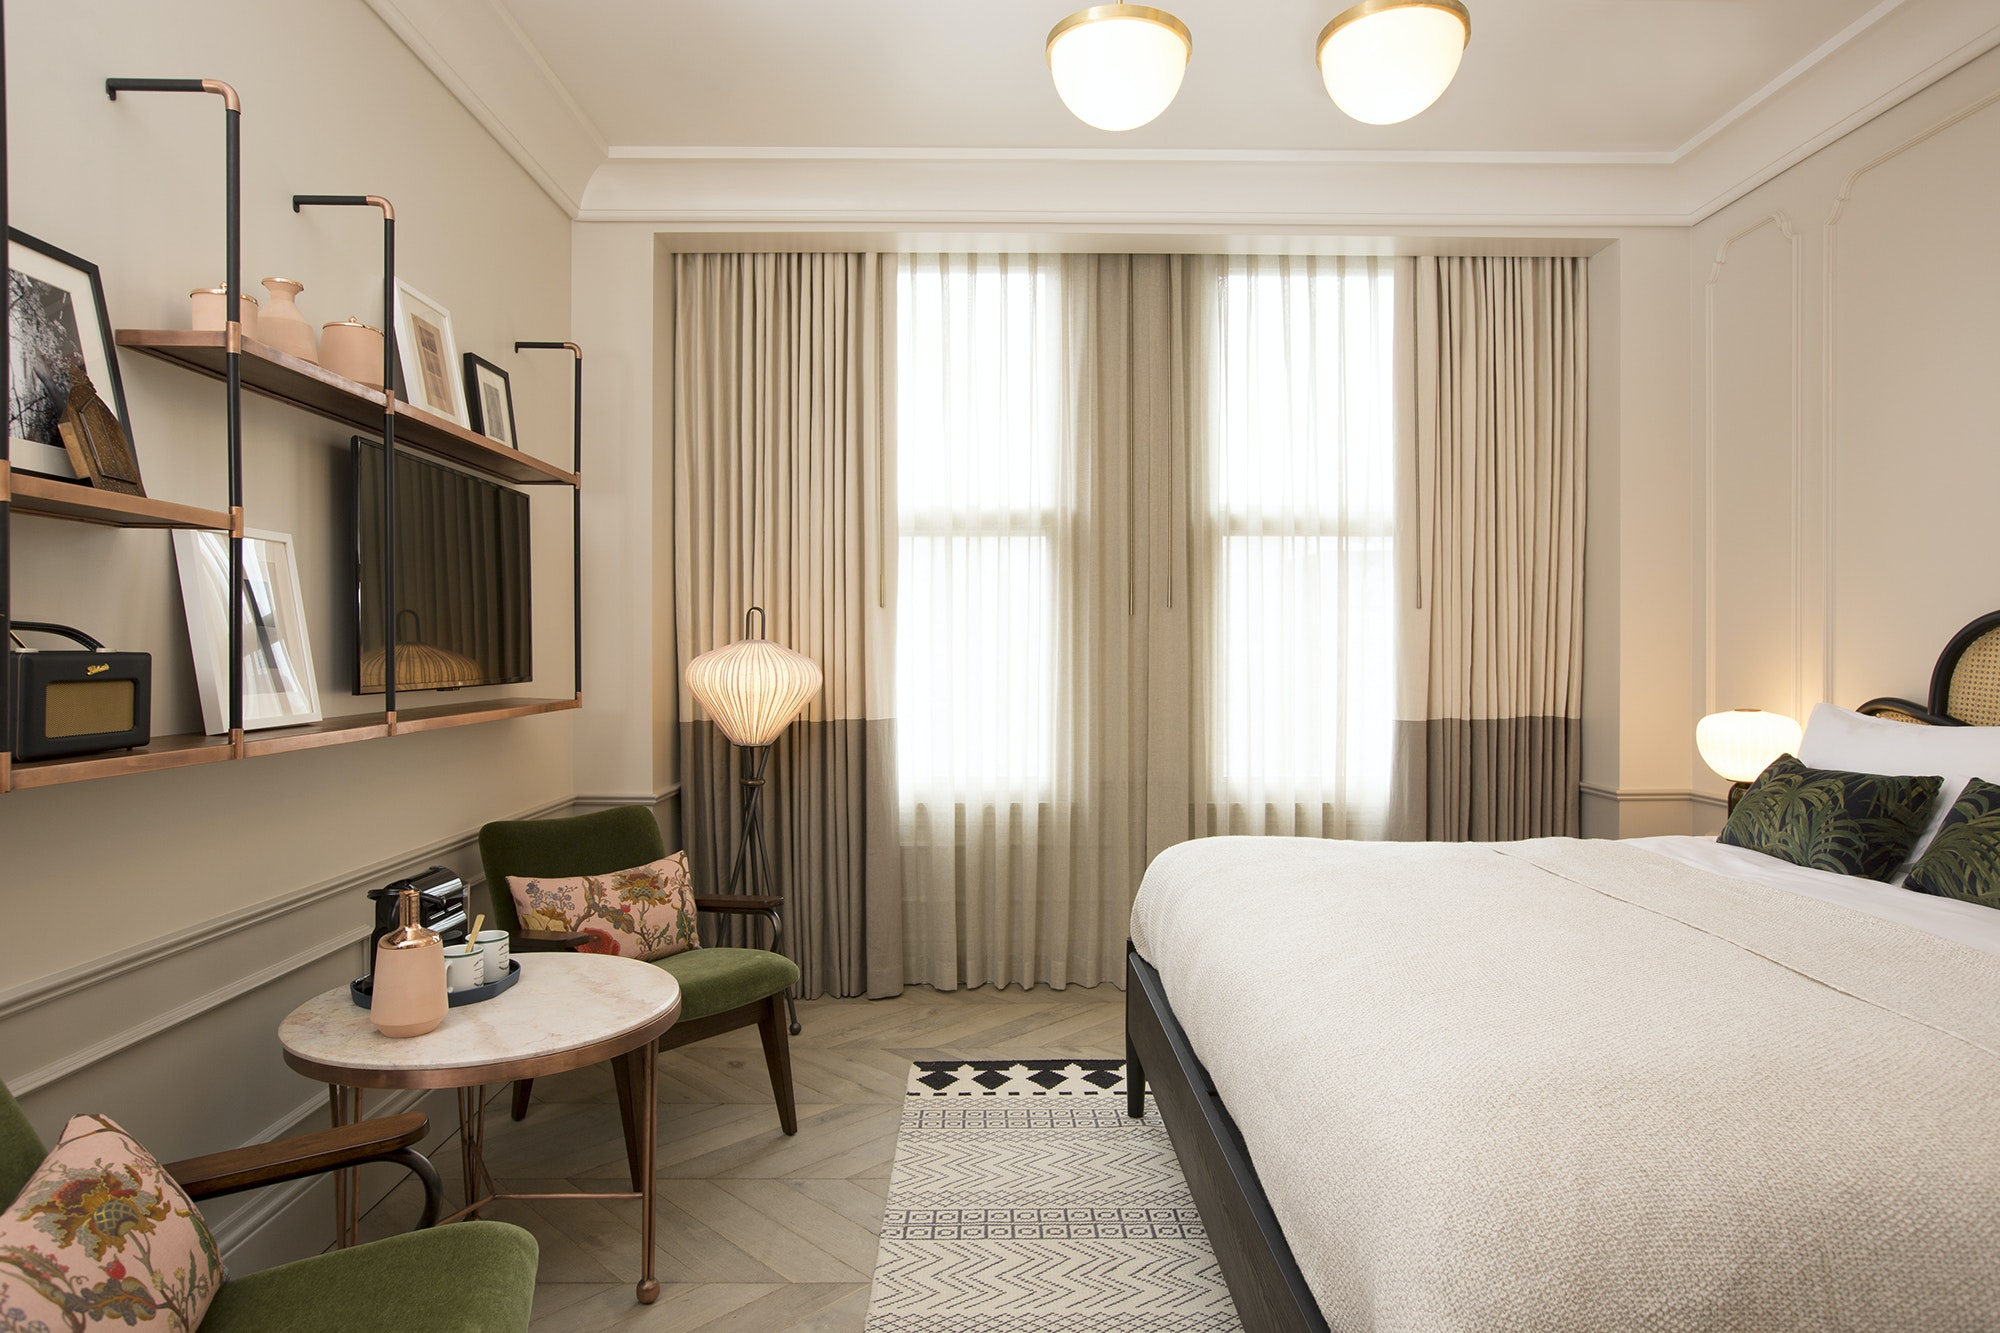 A sneak peek of the rooms at the upcoming Hoxton Hotel in Downtown L.A.